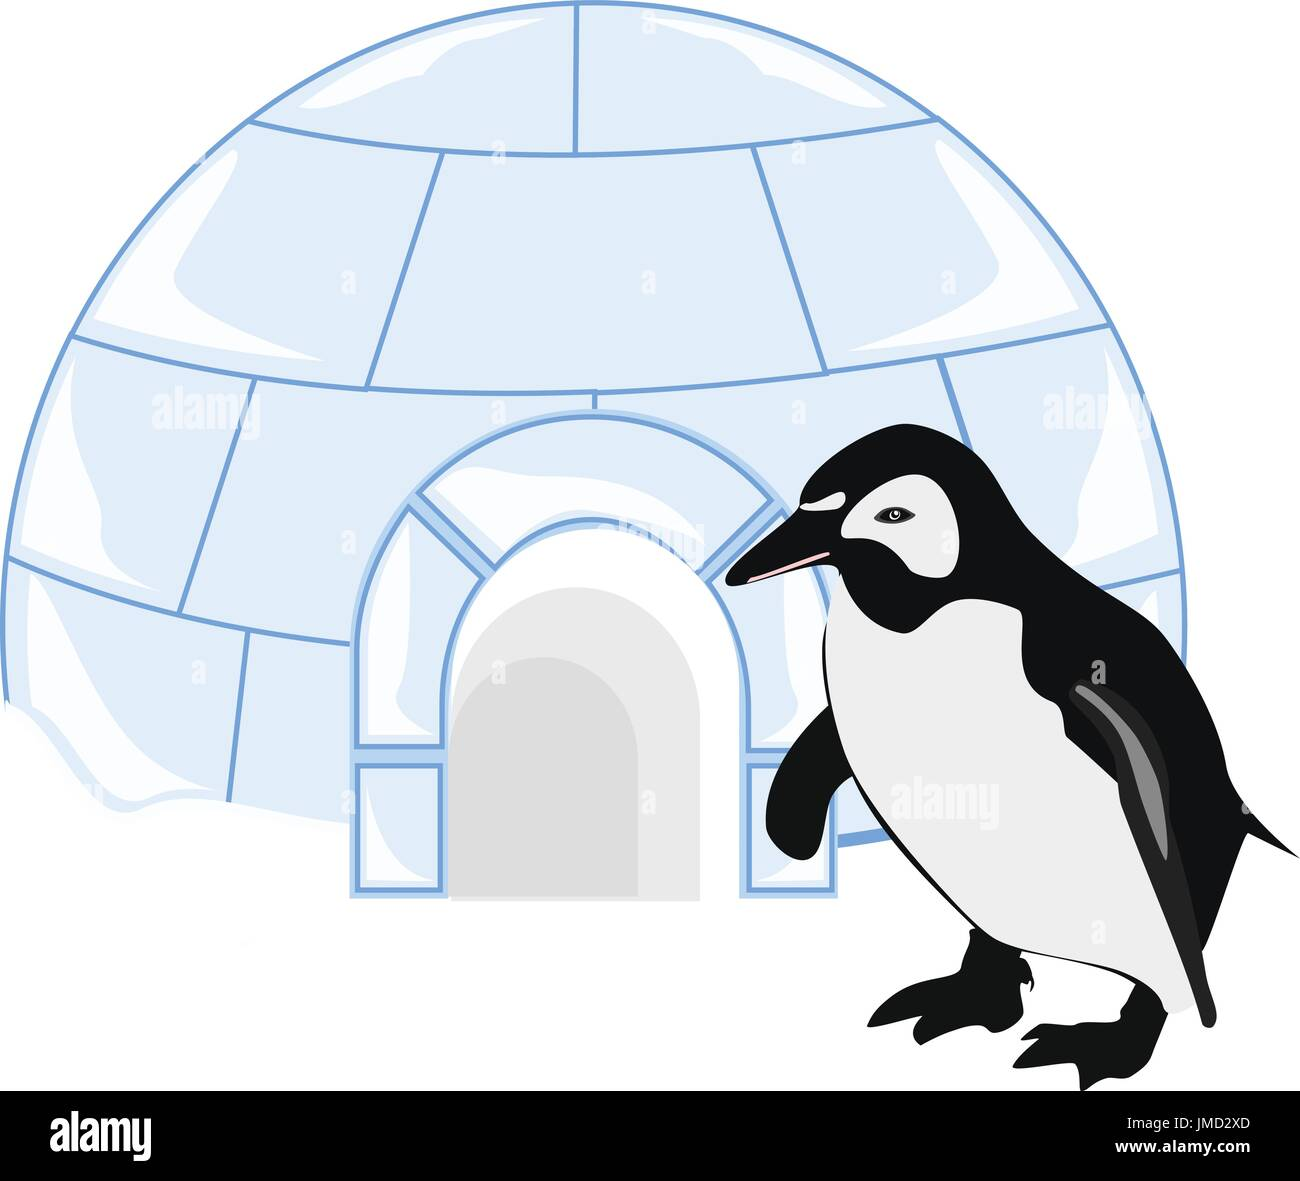 igloo snow alaska stockfotos igloo snow alaska bilder alamy. Black Bedroom Furniture Sets. Home Design Ideas